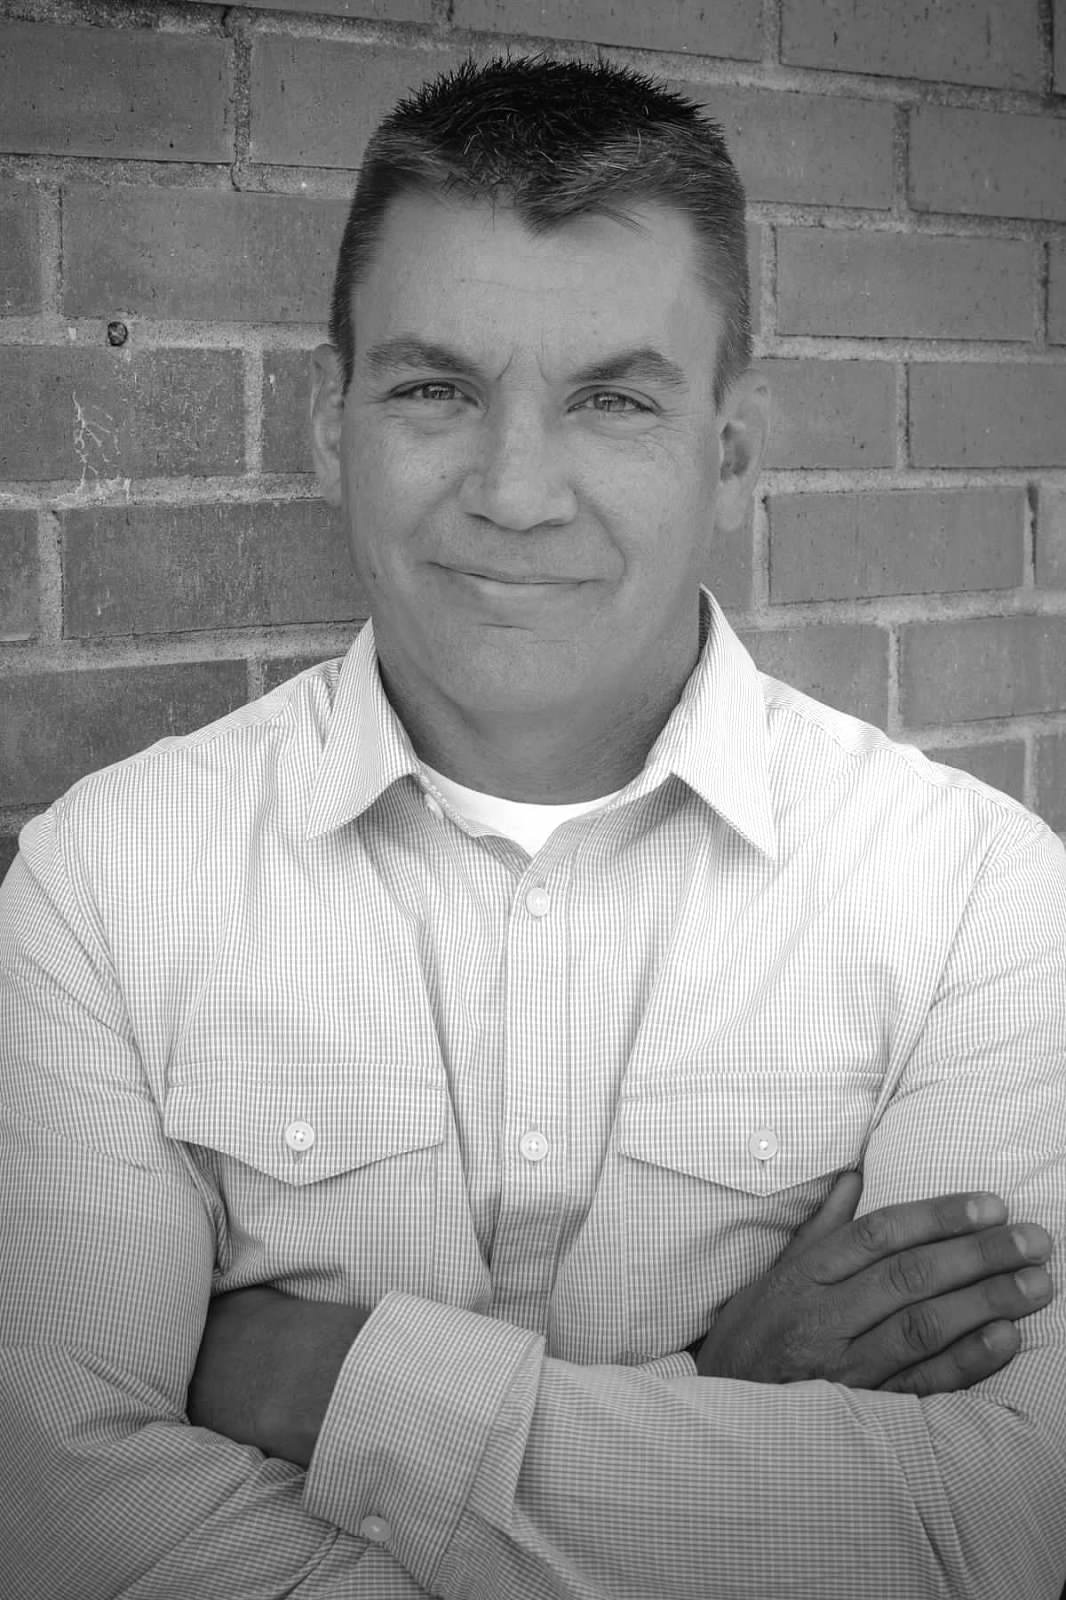 Author Chad A. Webster